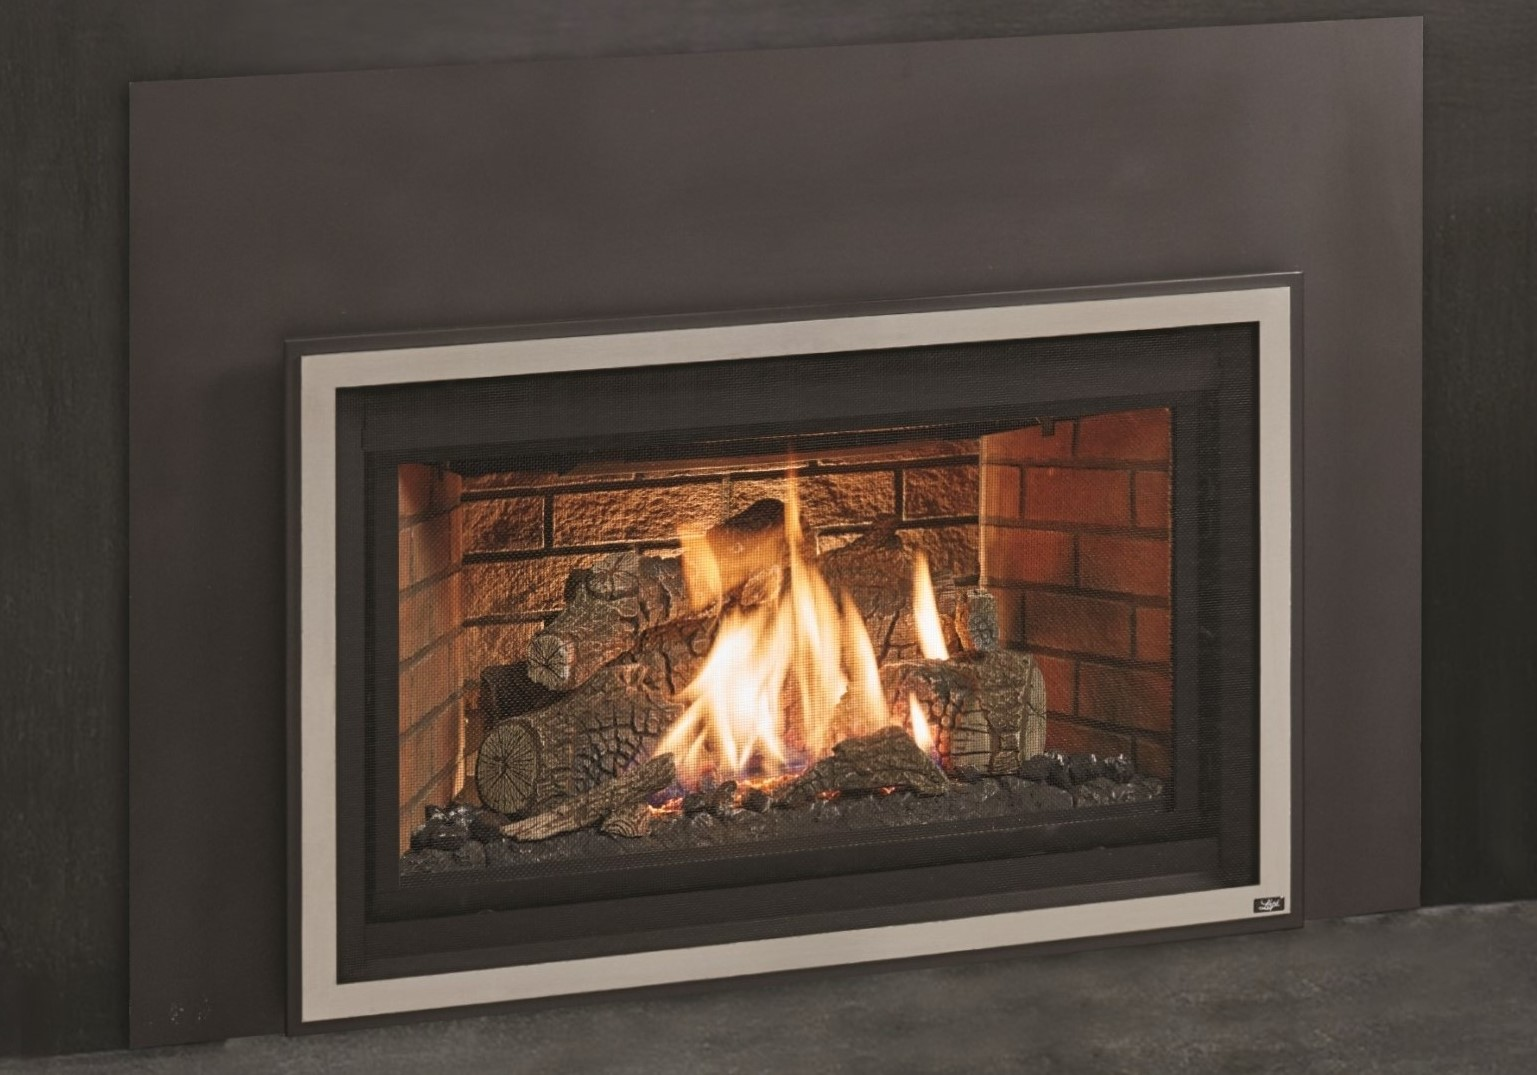 Image of a 32 DVS FireplaceX